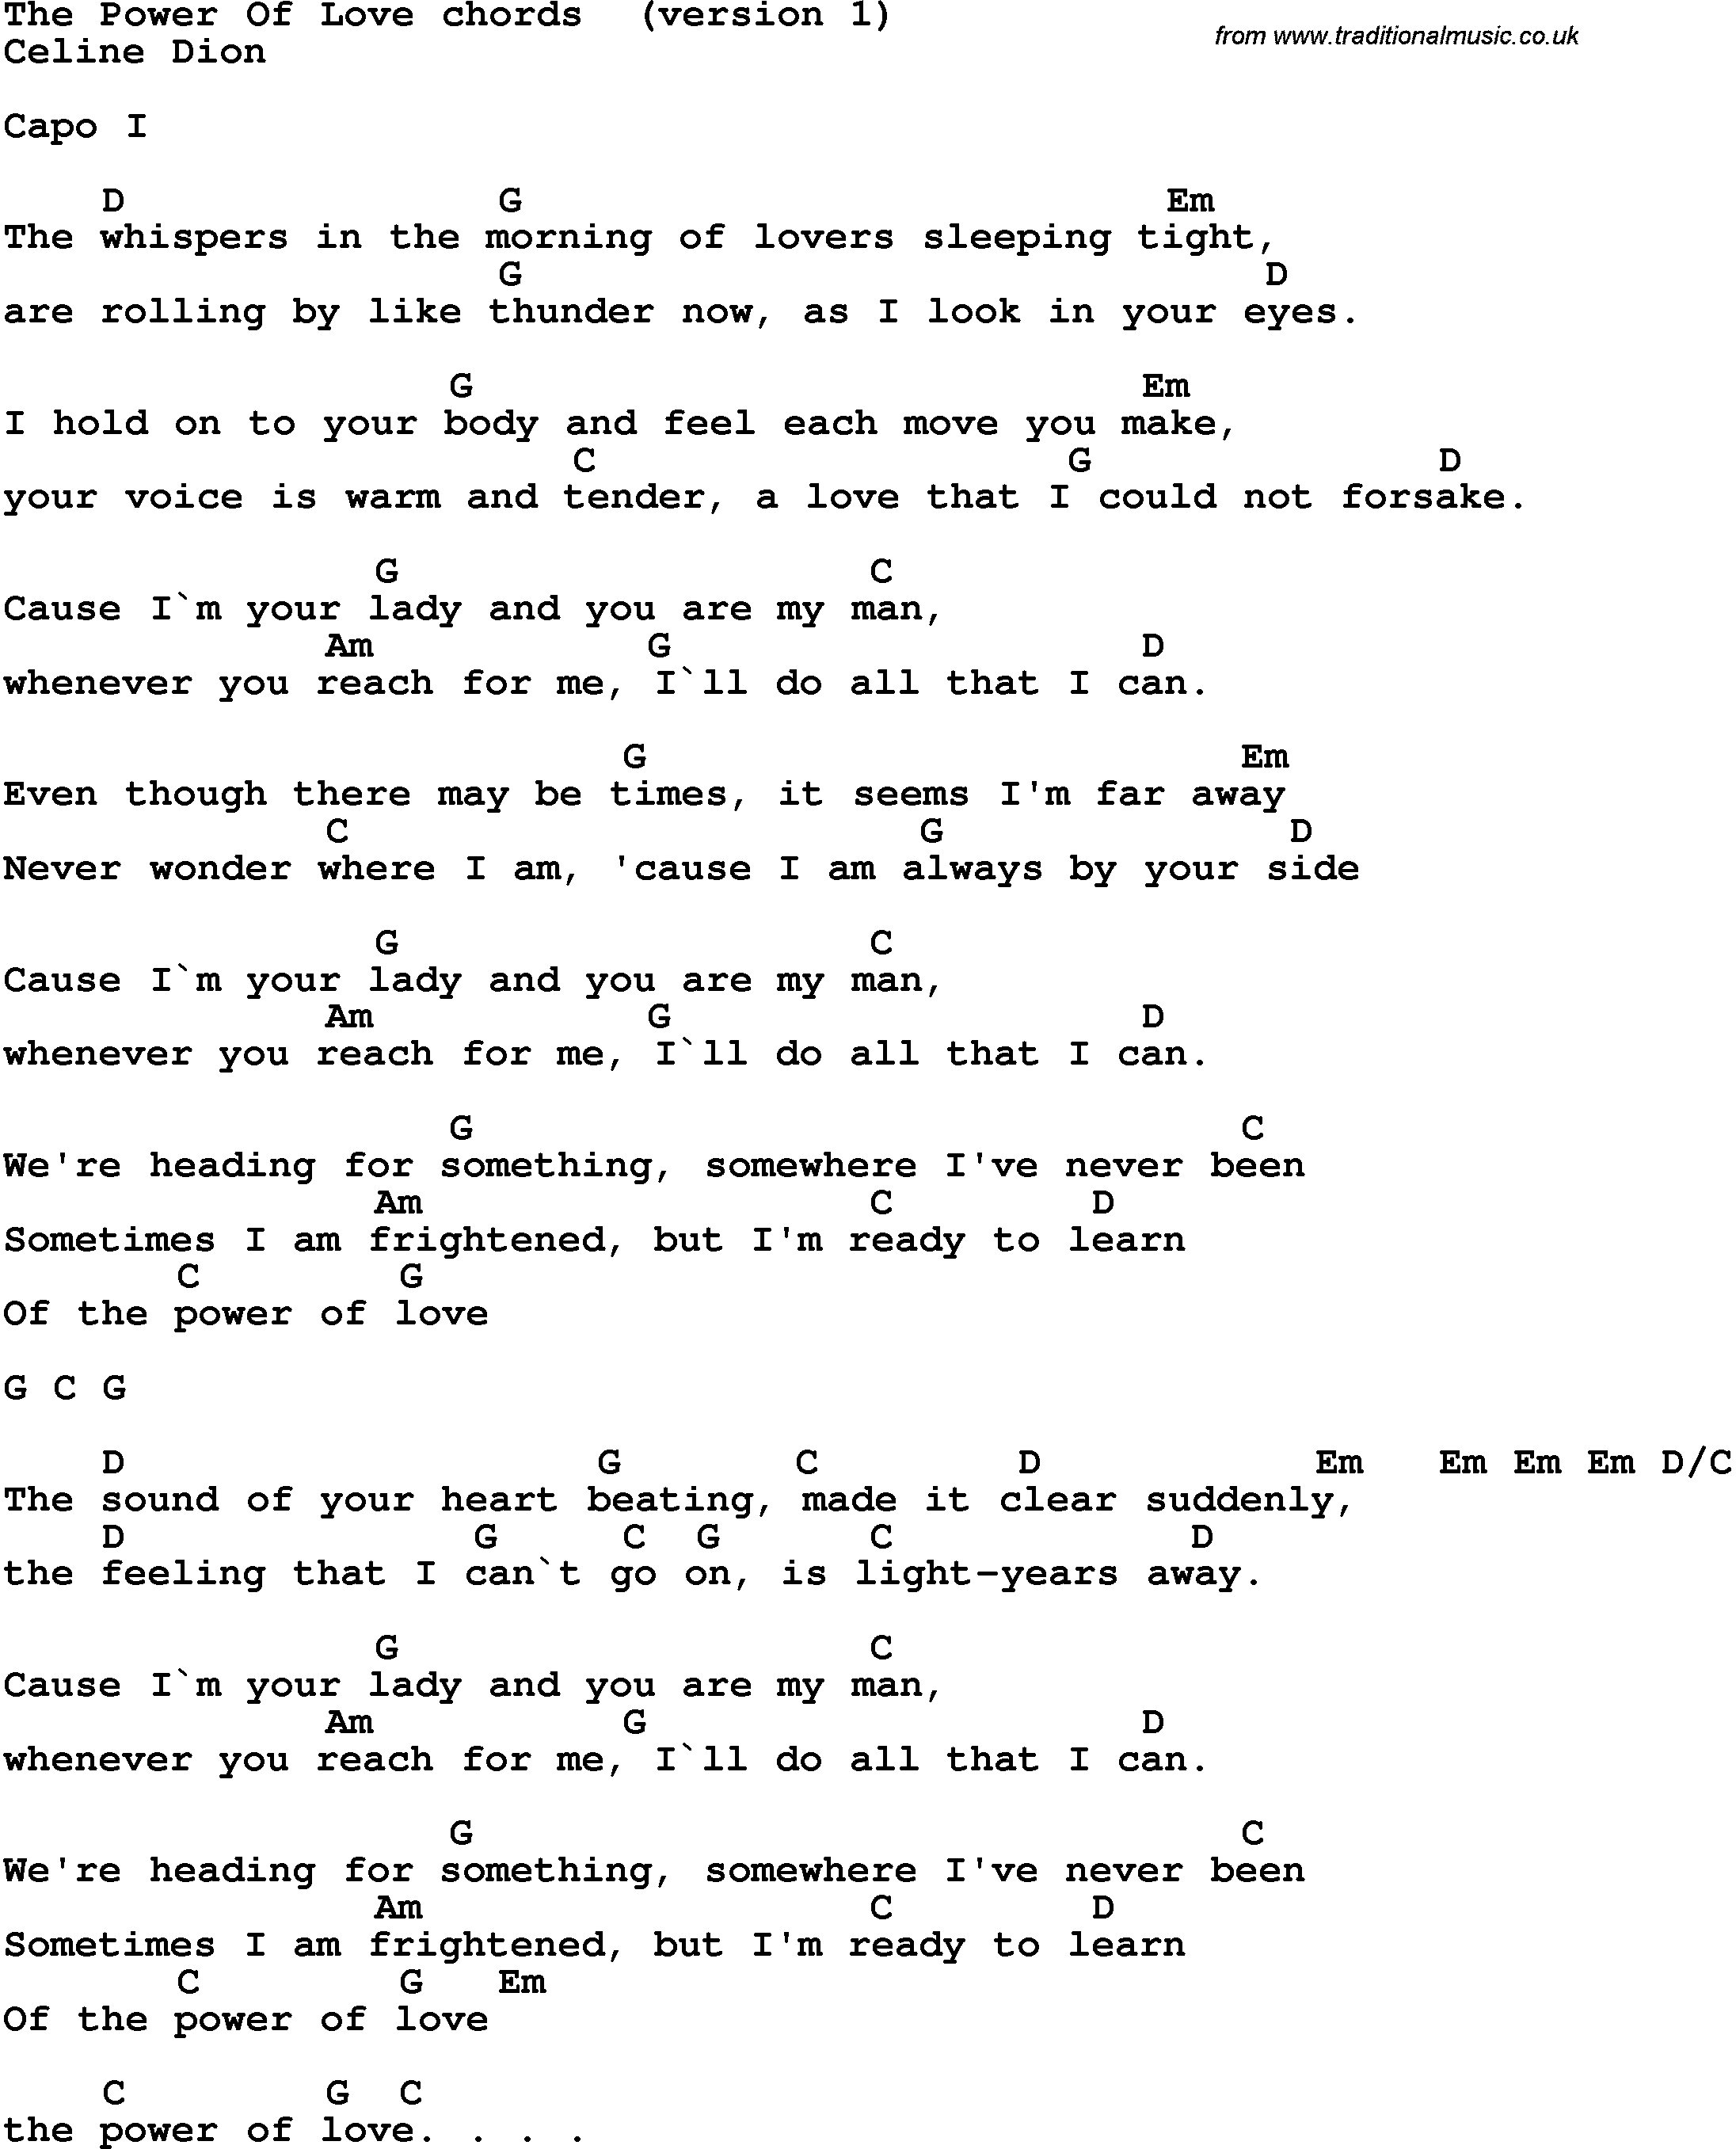 Make You Feel My Love Chords Song Lyrics With Guitar Chords For The Power Of Love Celine Dion